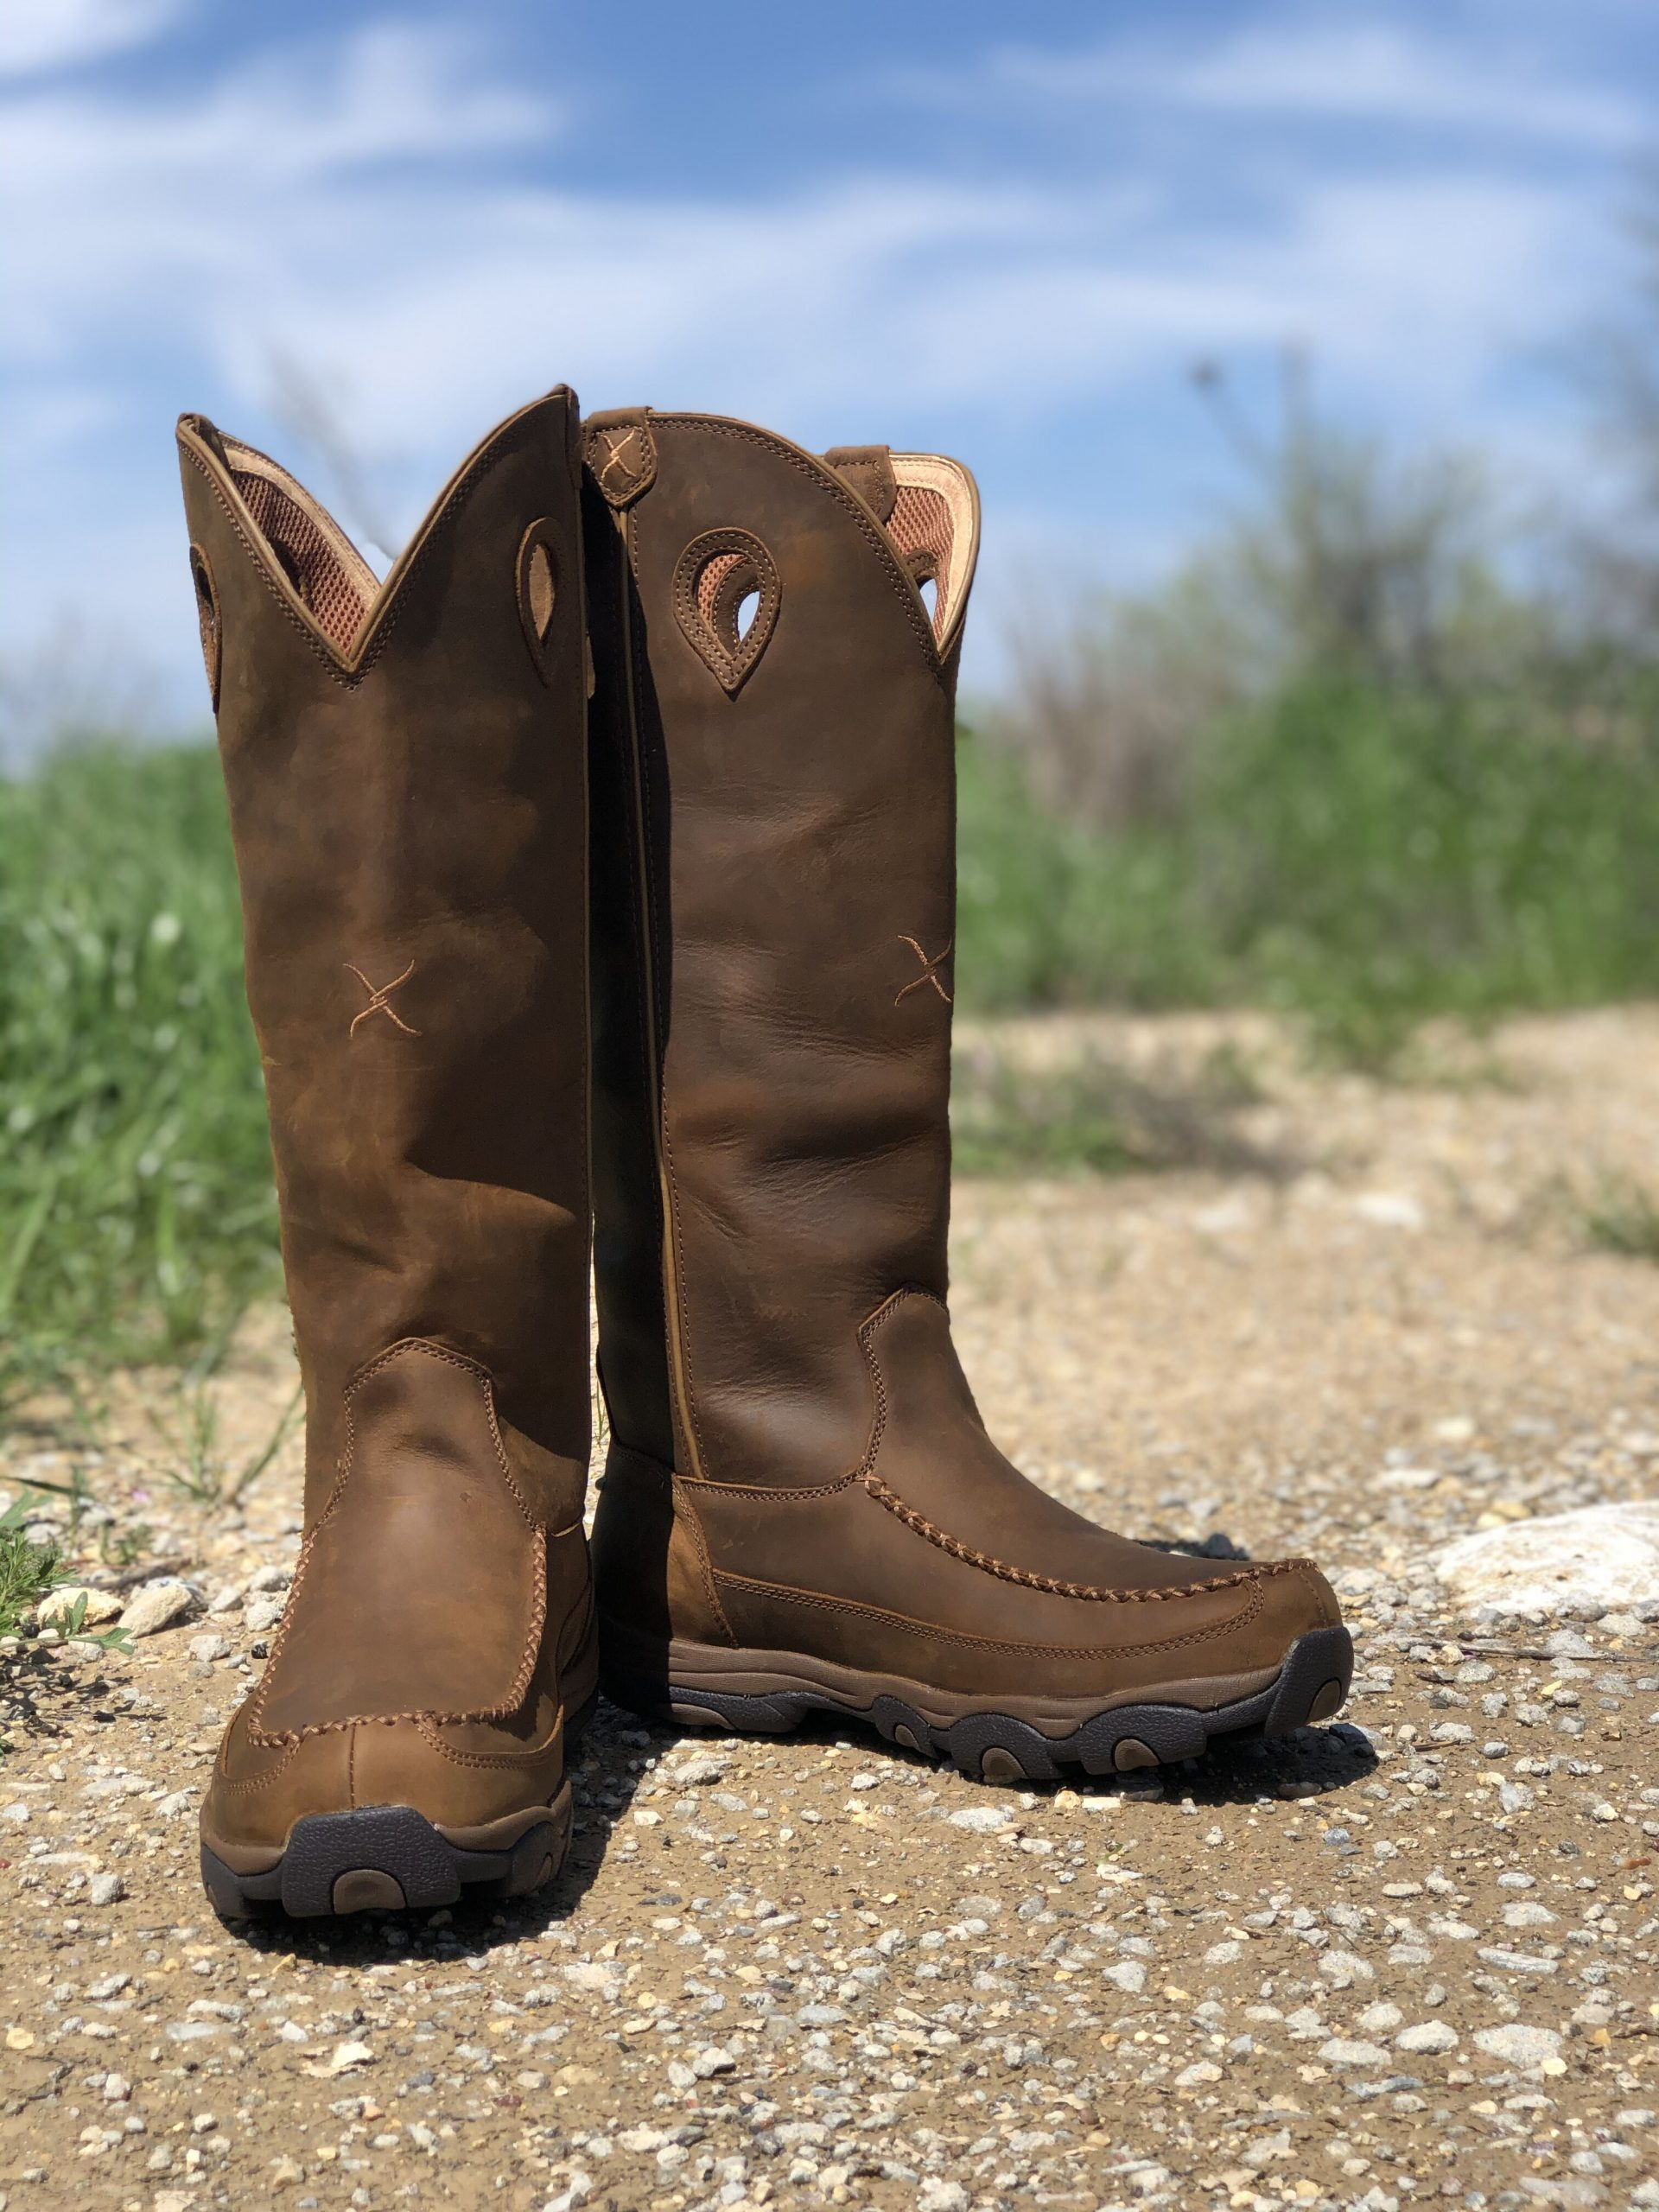 BOOT review